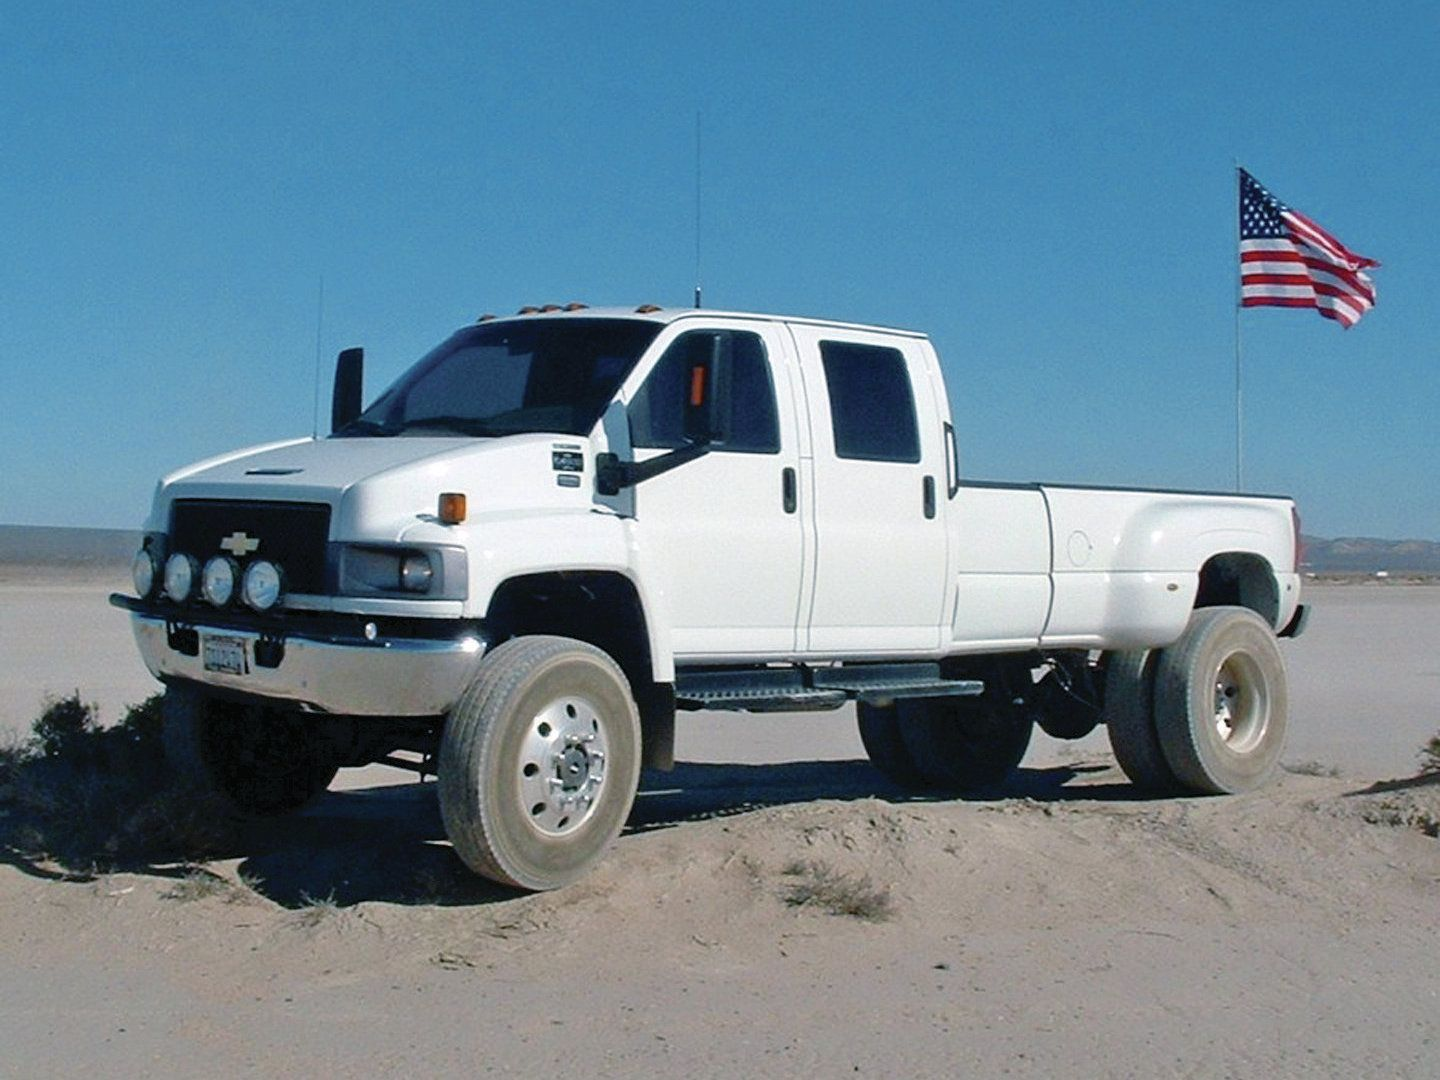 All Chevy chevy c10 wiki : 2005 Chevrolet Kodiak - Chevrolet Kodiak Wikipedia the free ...